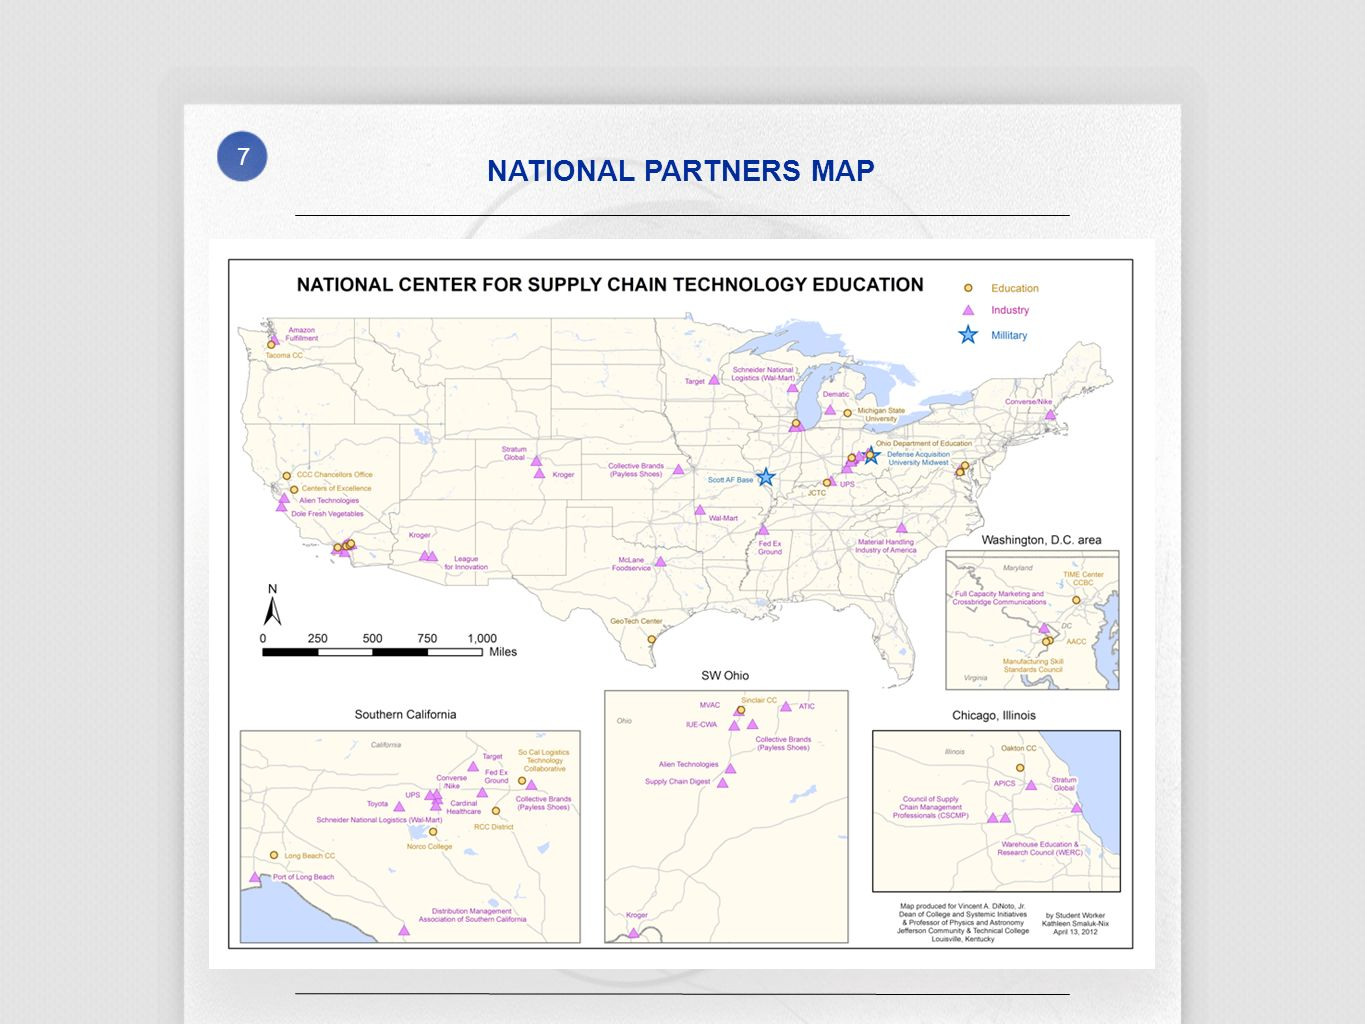 7 NATIONAL PARTNERS MAP